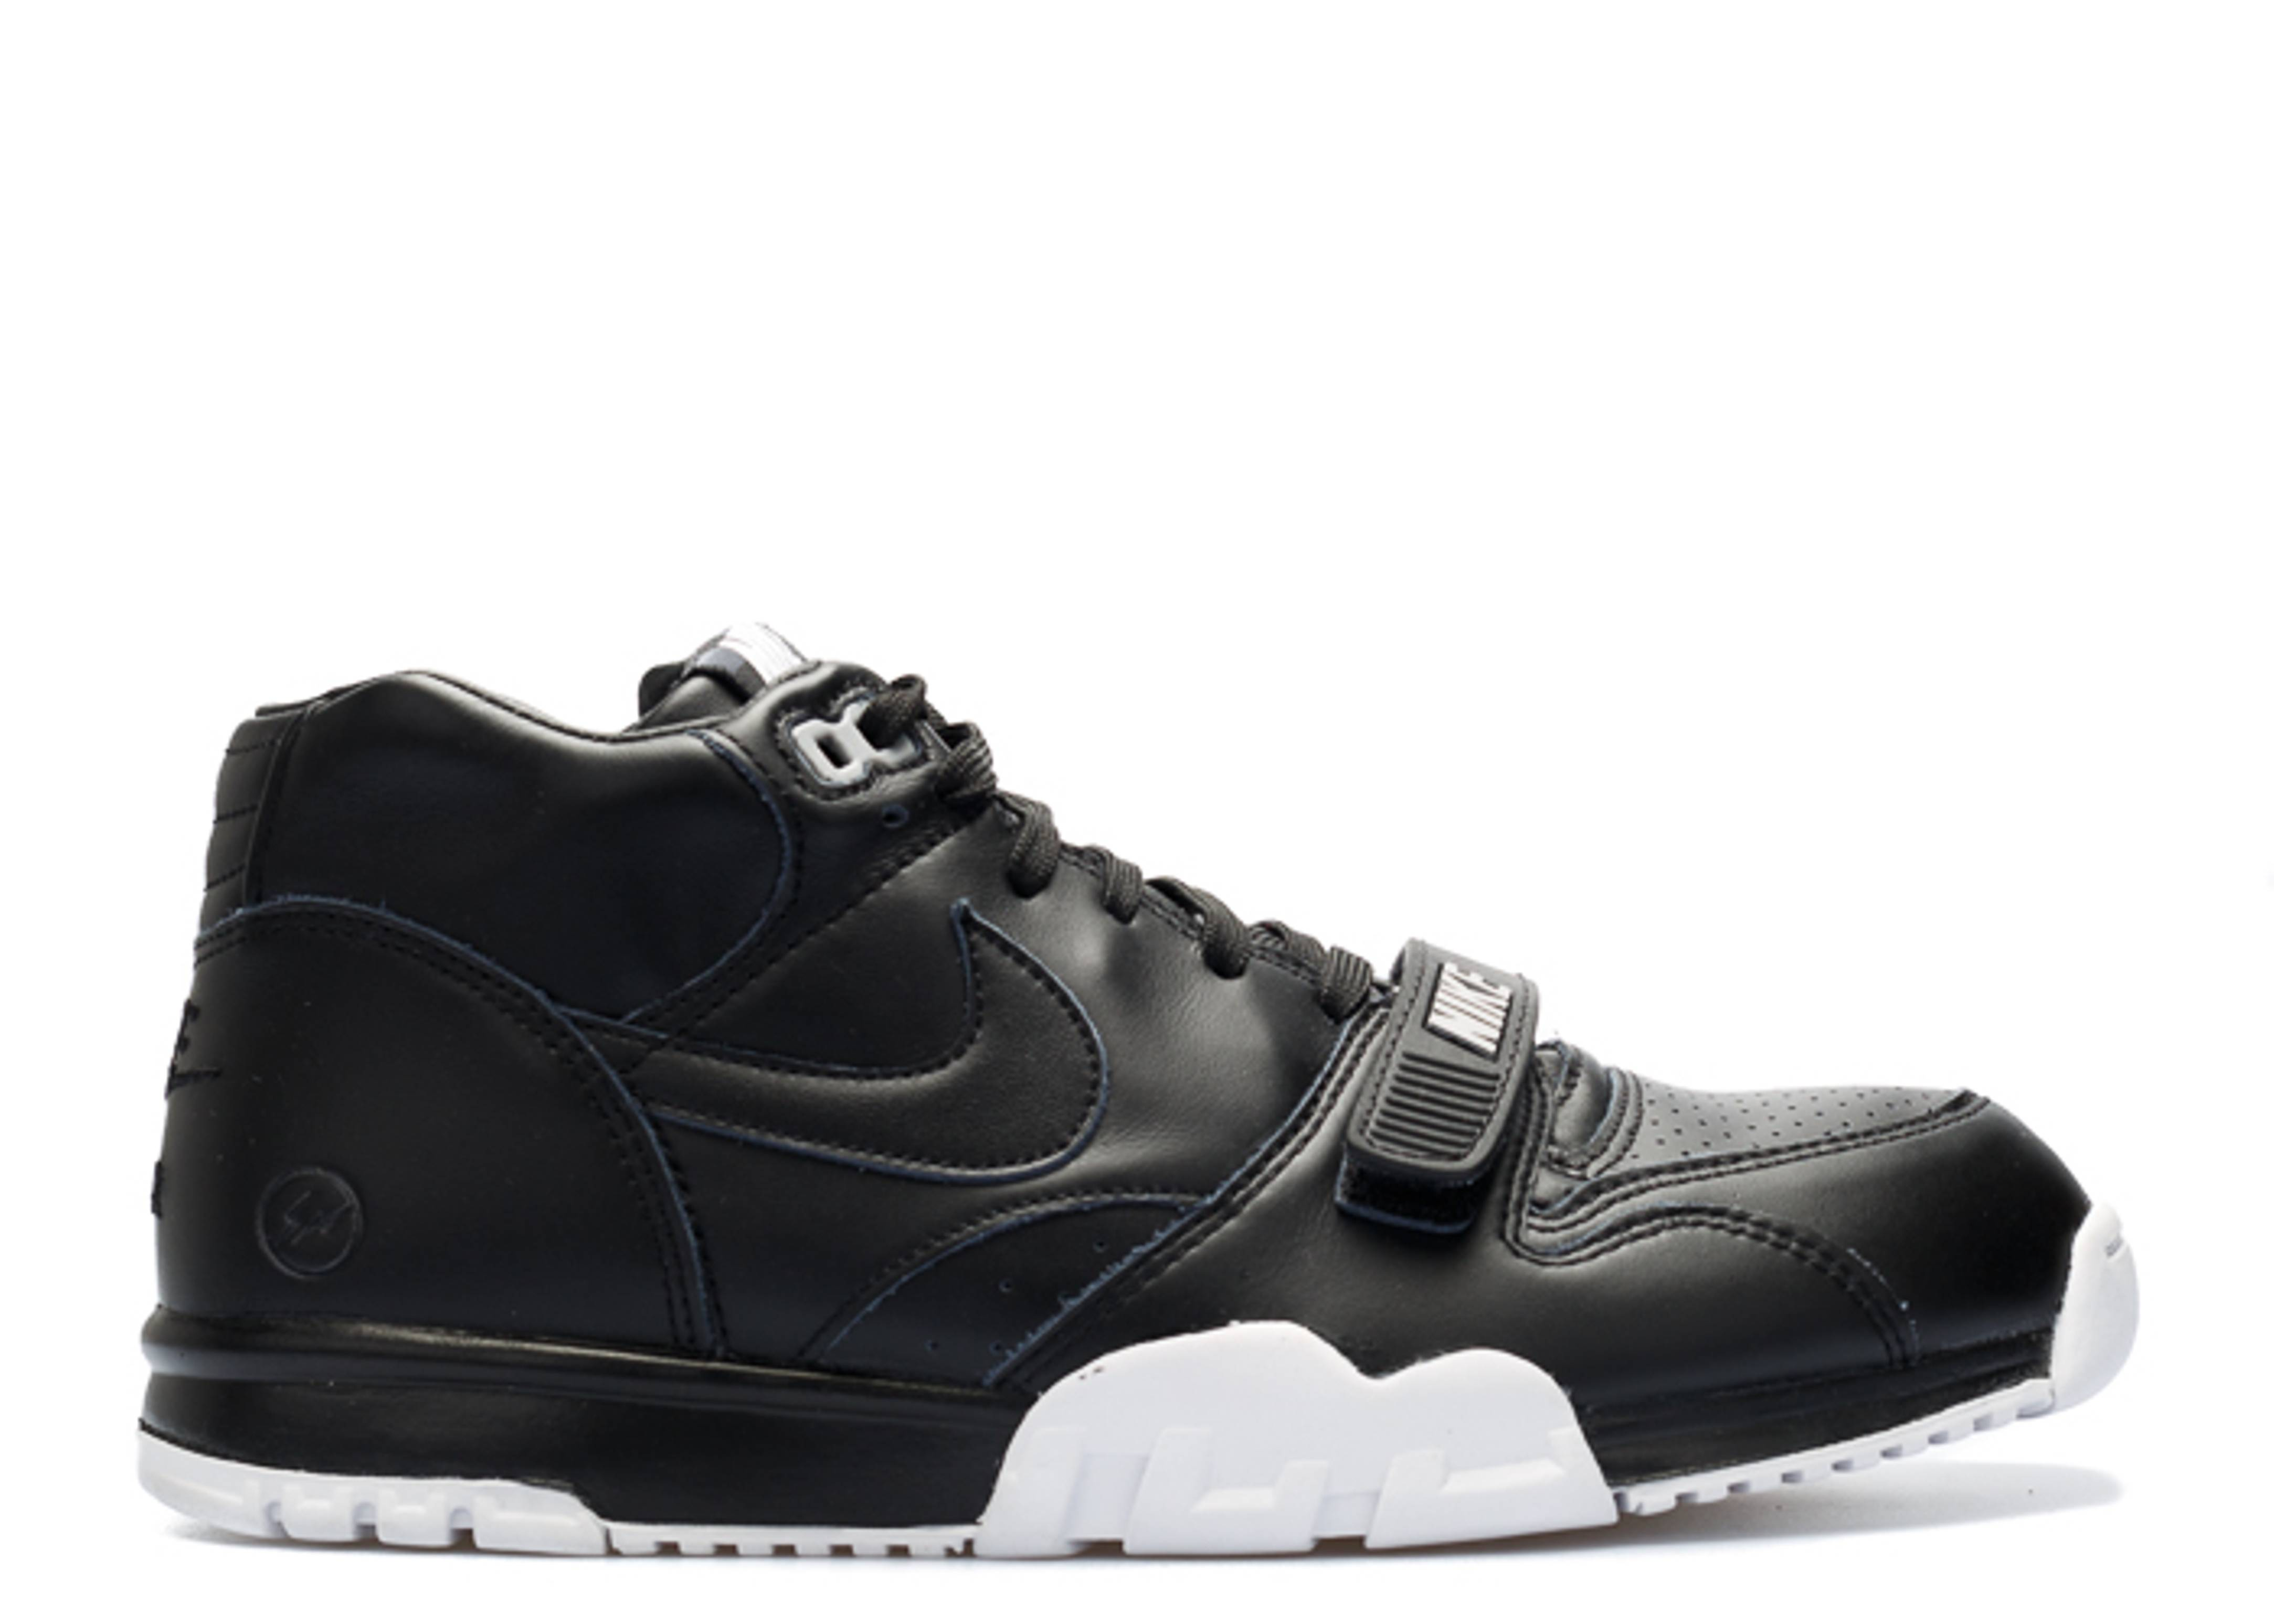 Nike Air Trainer 1 Mid Sneakers Anthracite